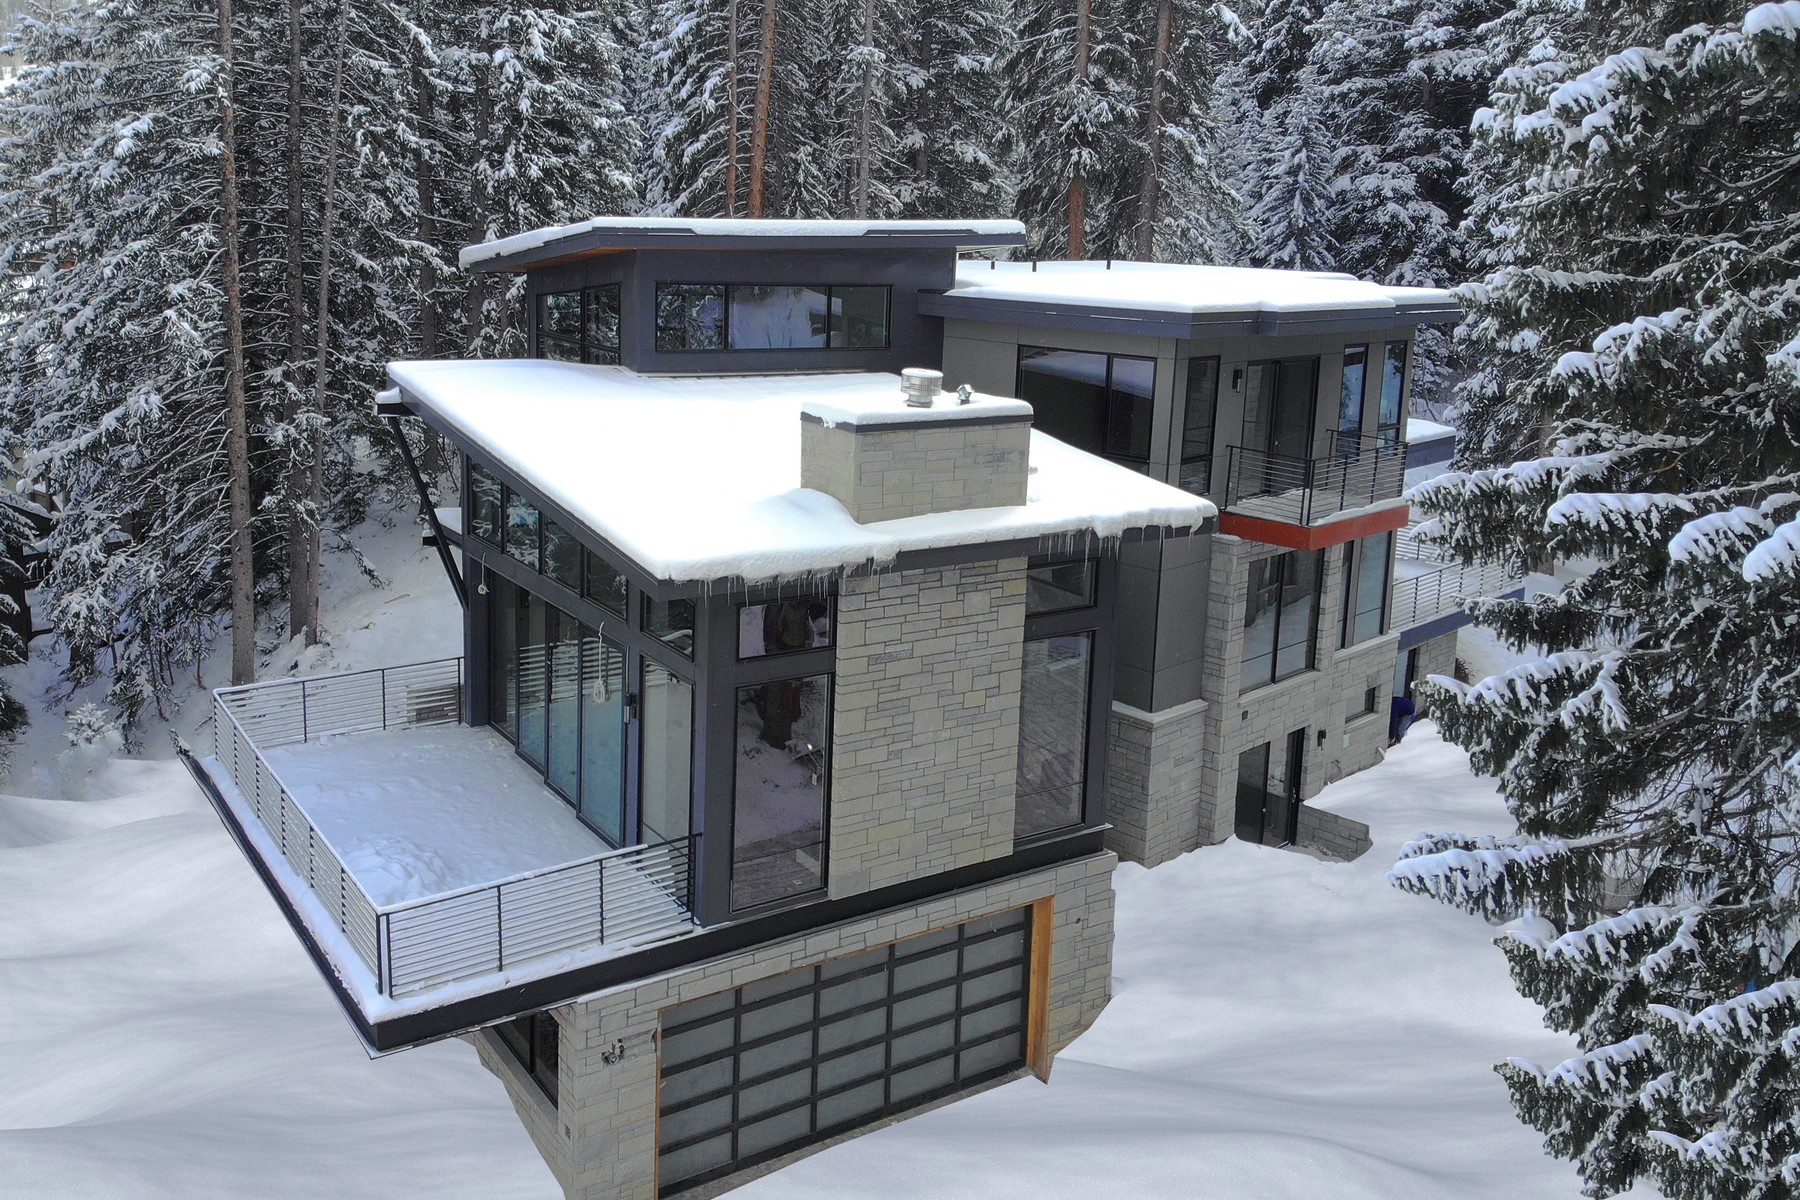 Single Family Homes for Active at One-of-a-kind luxury, mountain contemporary residence 4872 Meadow Lane Vail, Colorado 81657 United States